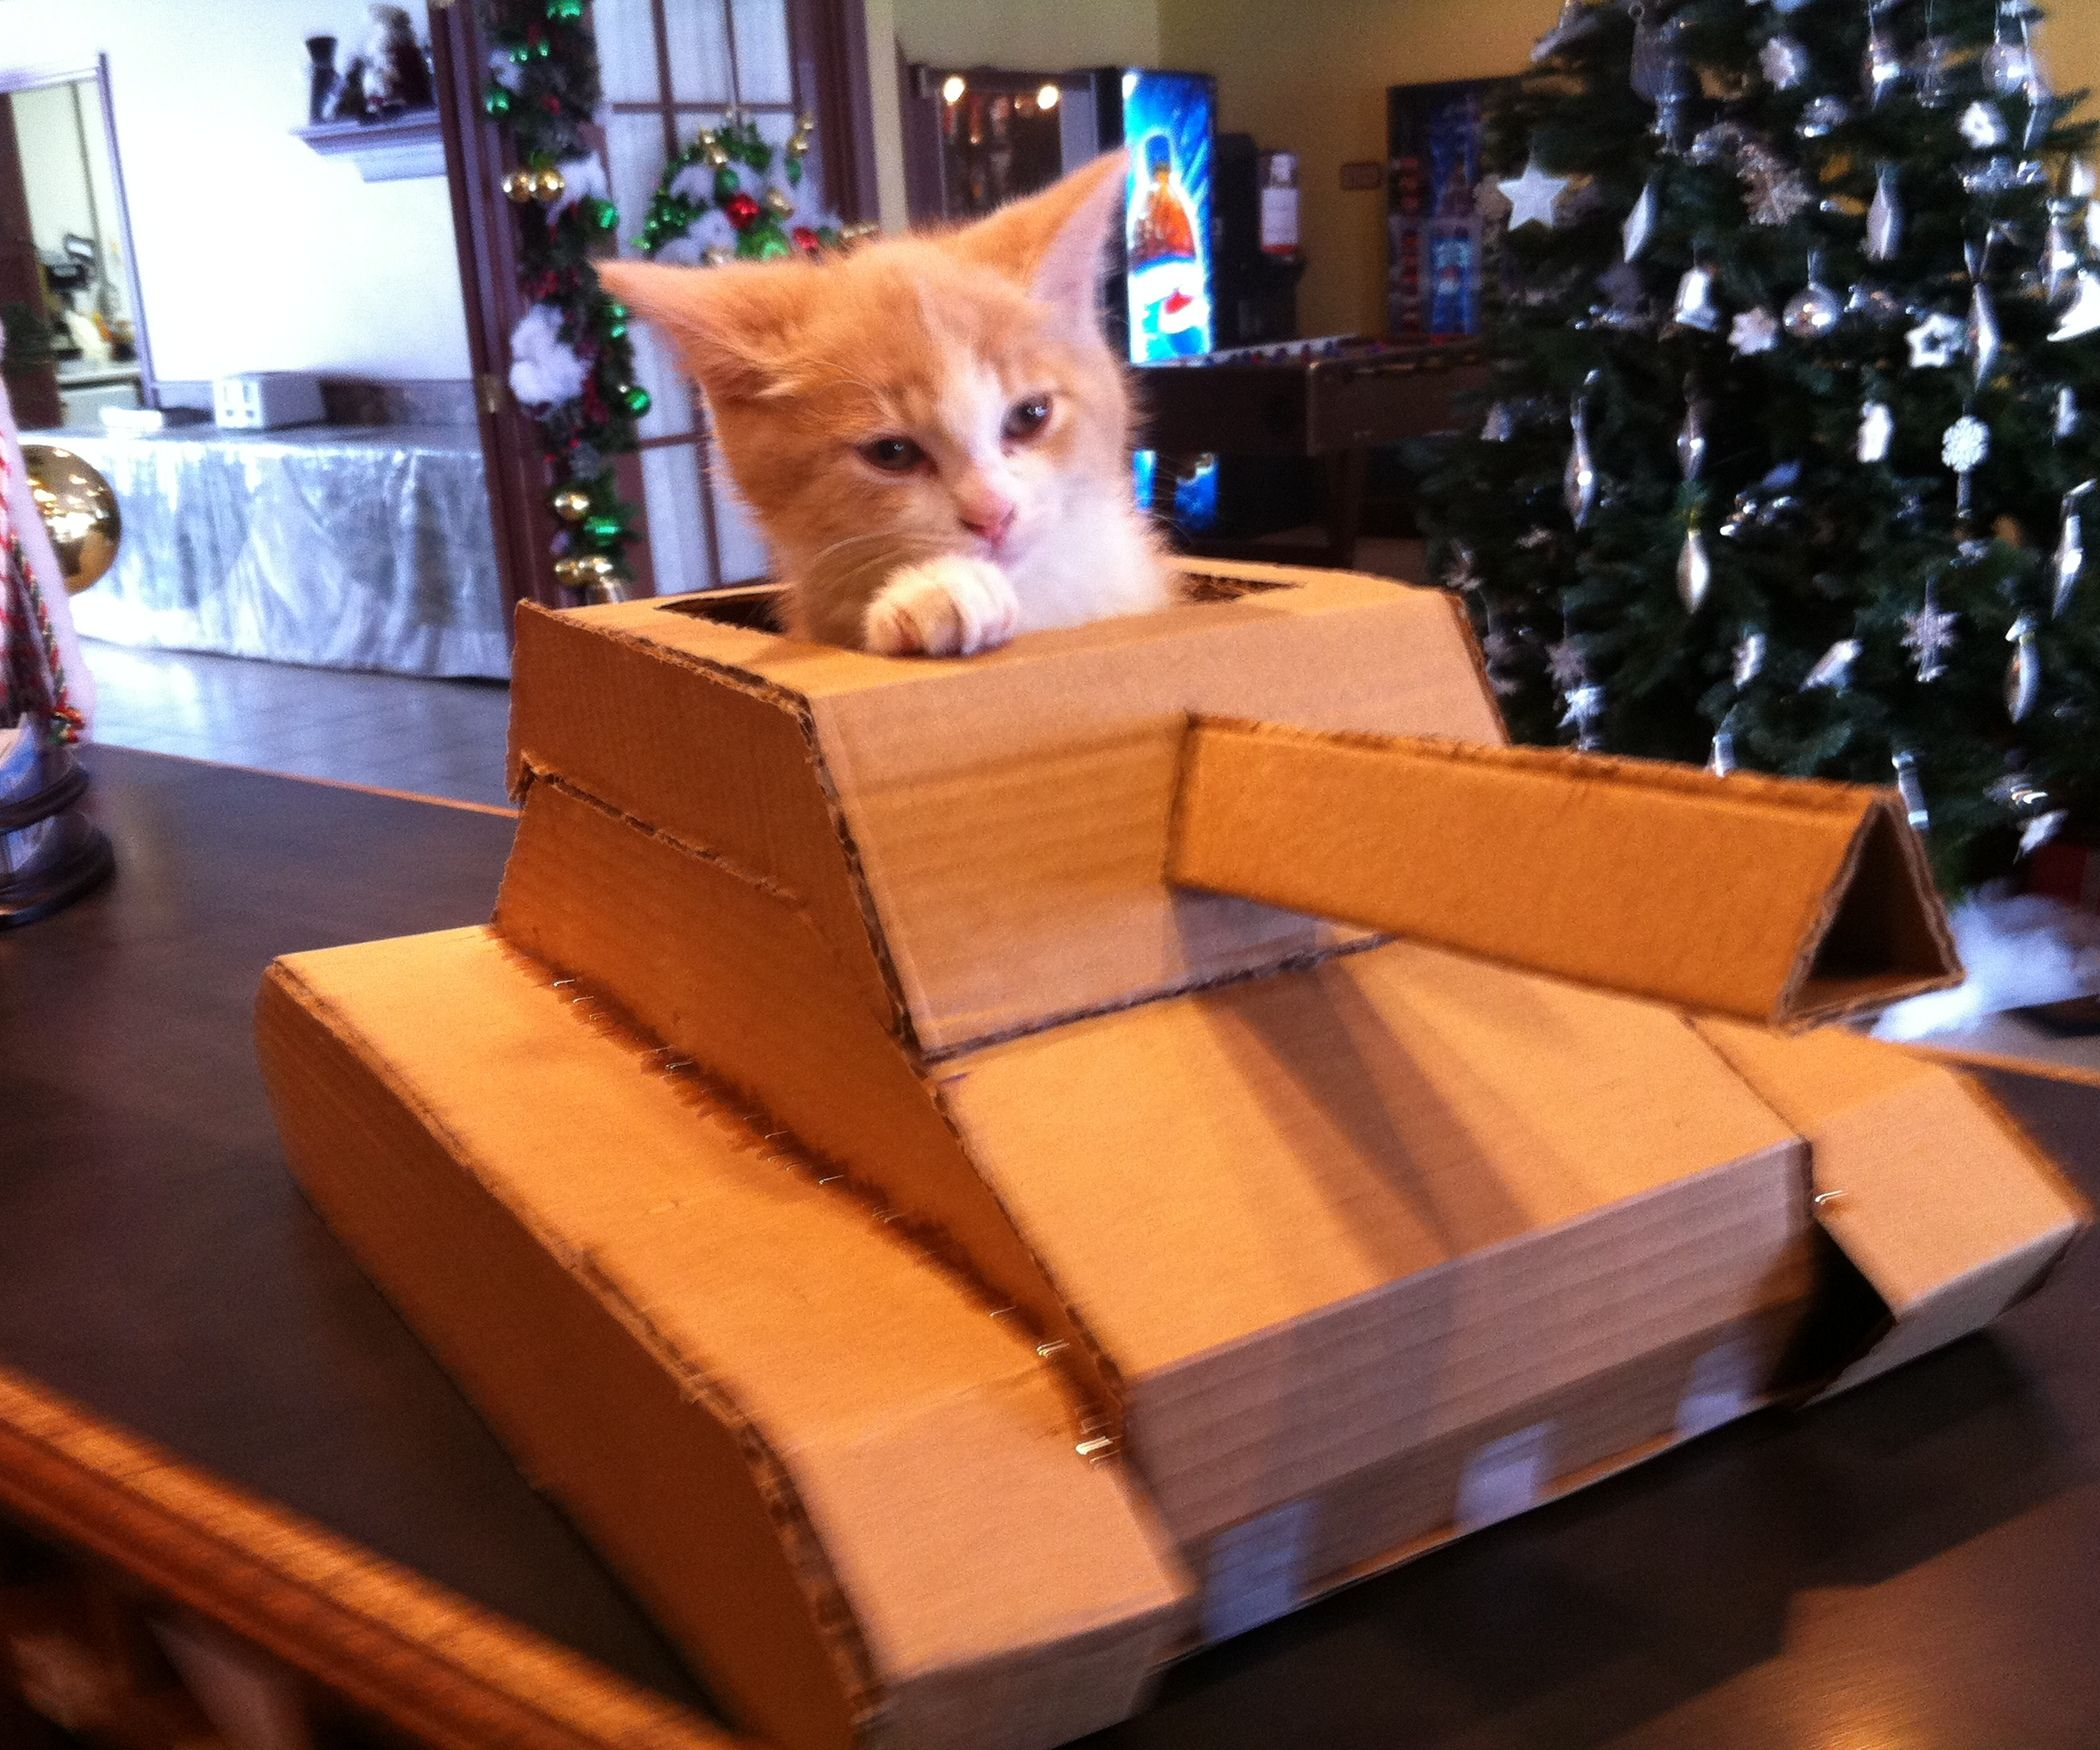 I Am Going To Show You The Steps Of How I Made My Own Tank Out Of A Cardboard Box I Made It For My Little Kitten Cardboard Cat House